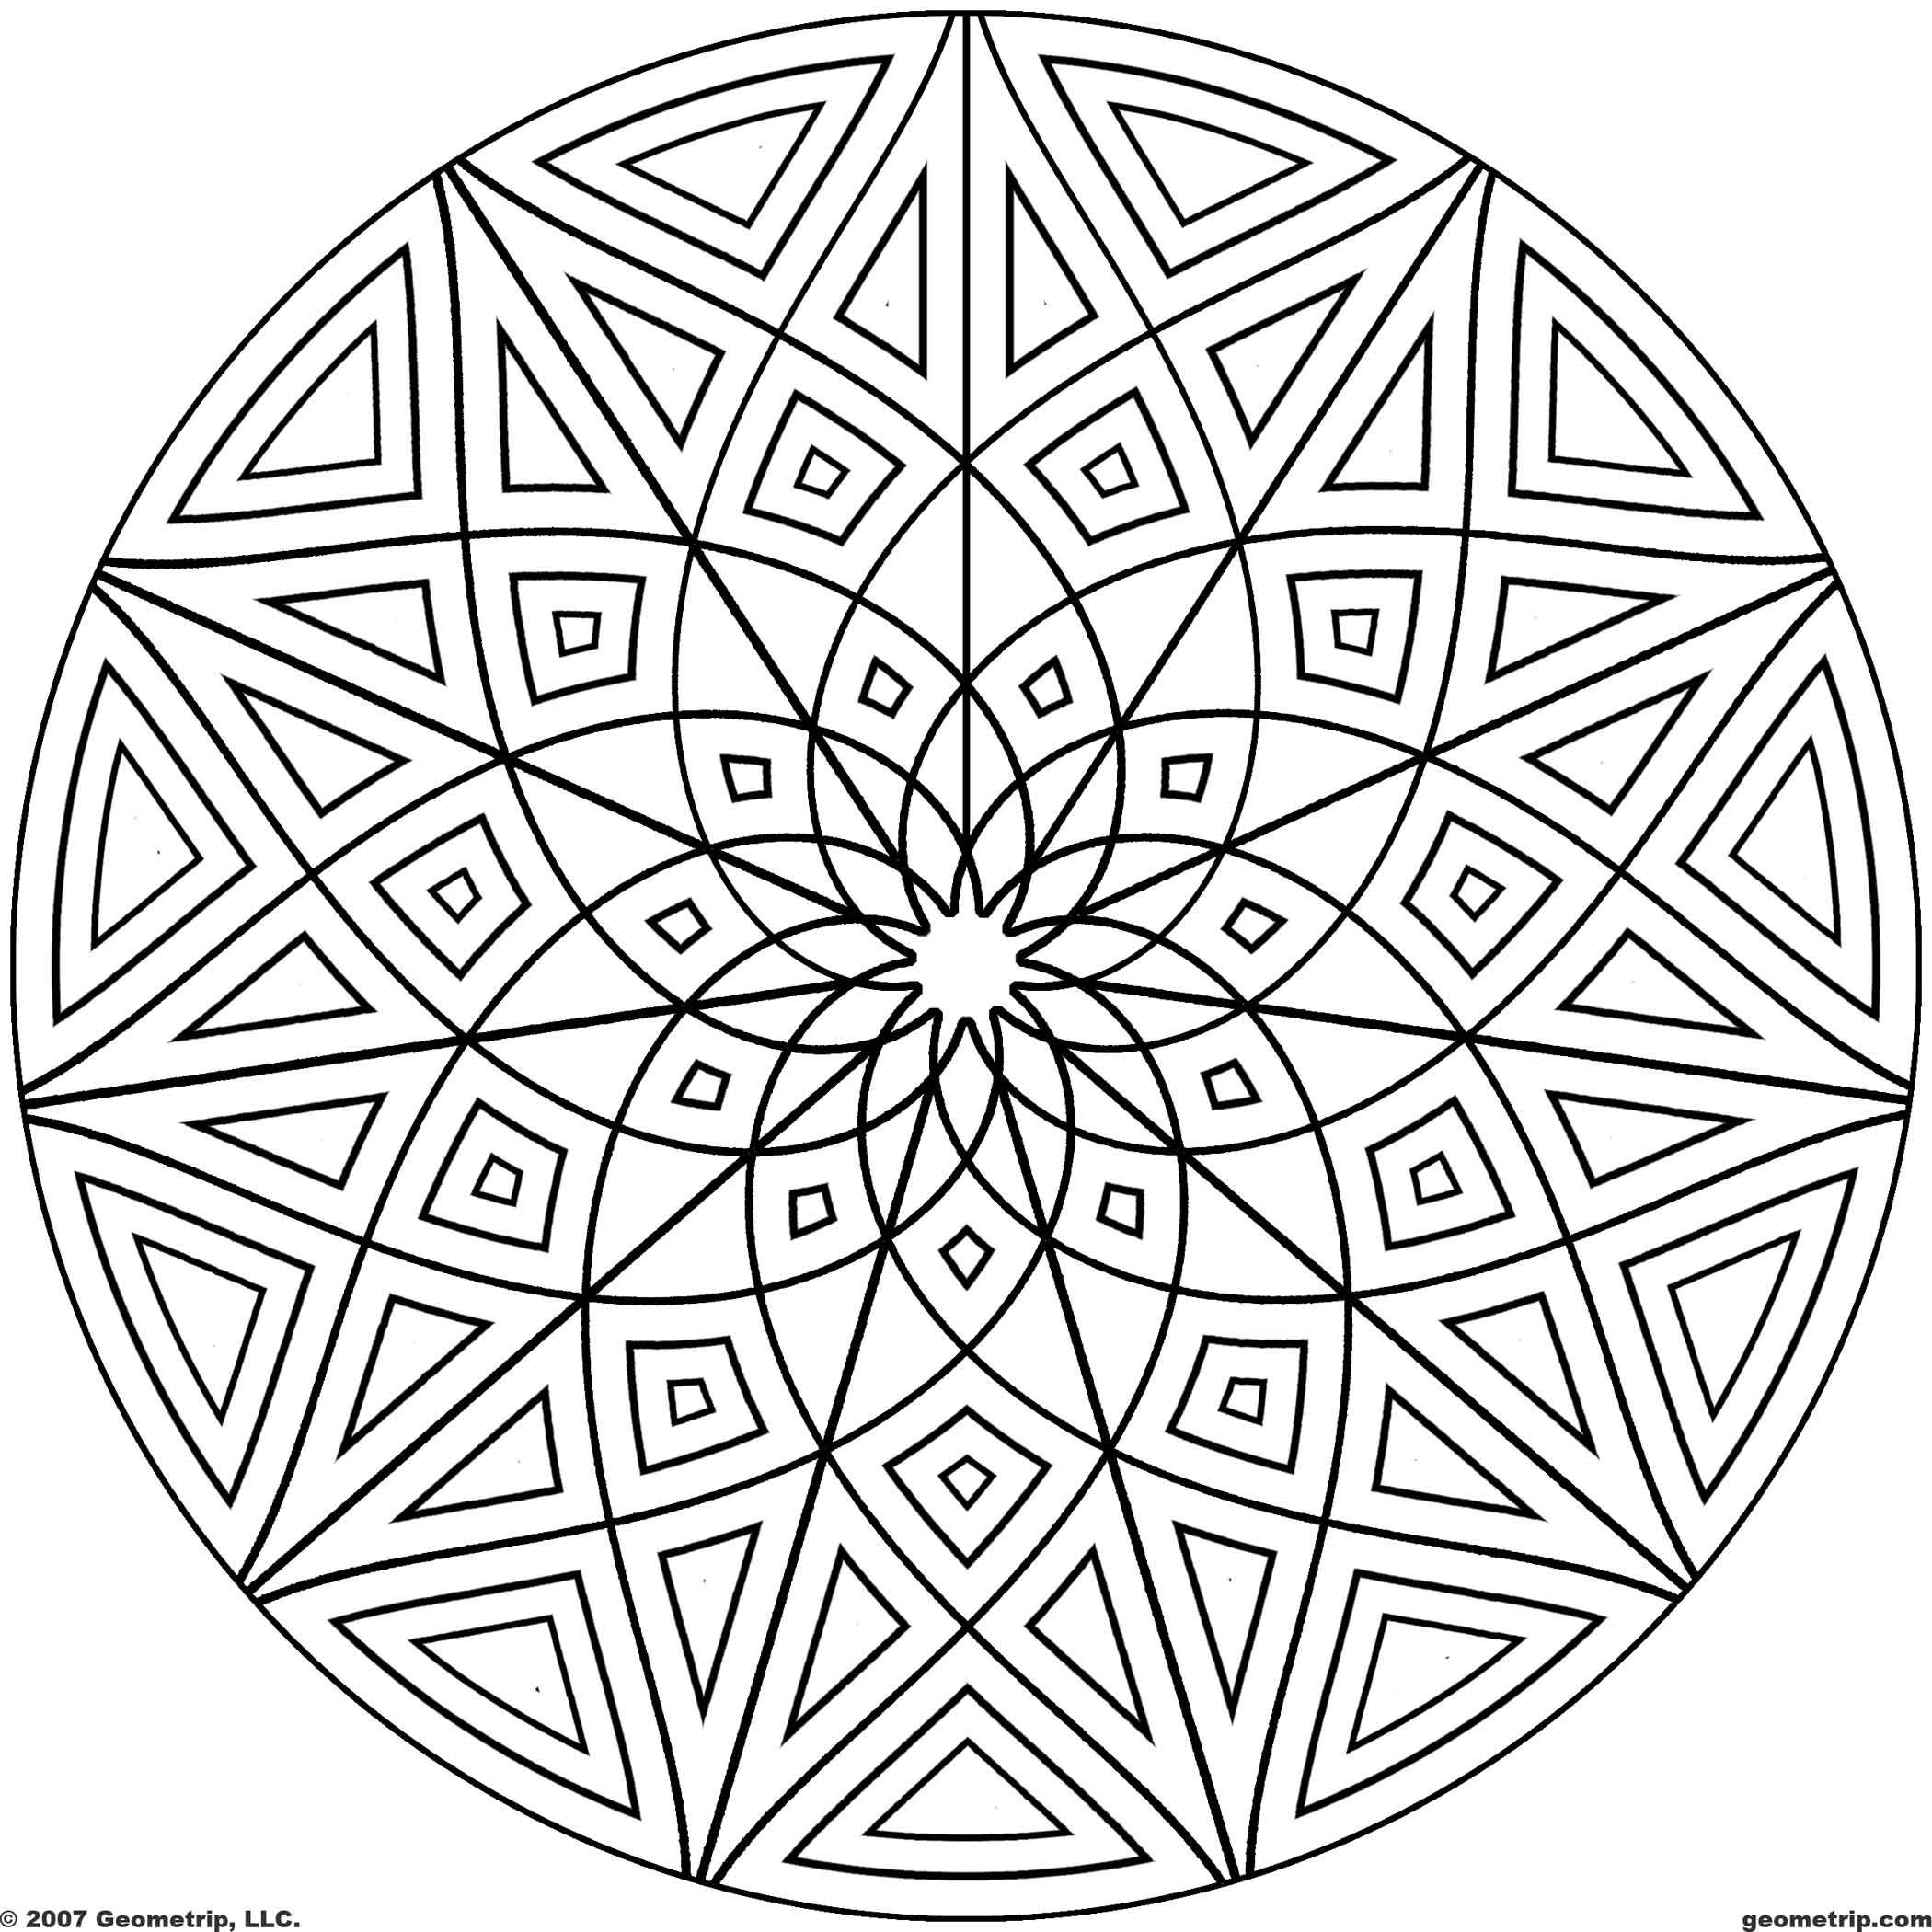 Kaleidoscope Coloring Pages  Geometripcom  Free Geometric